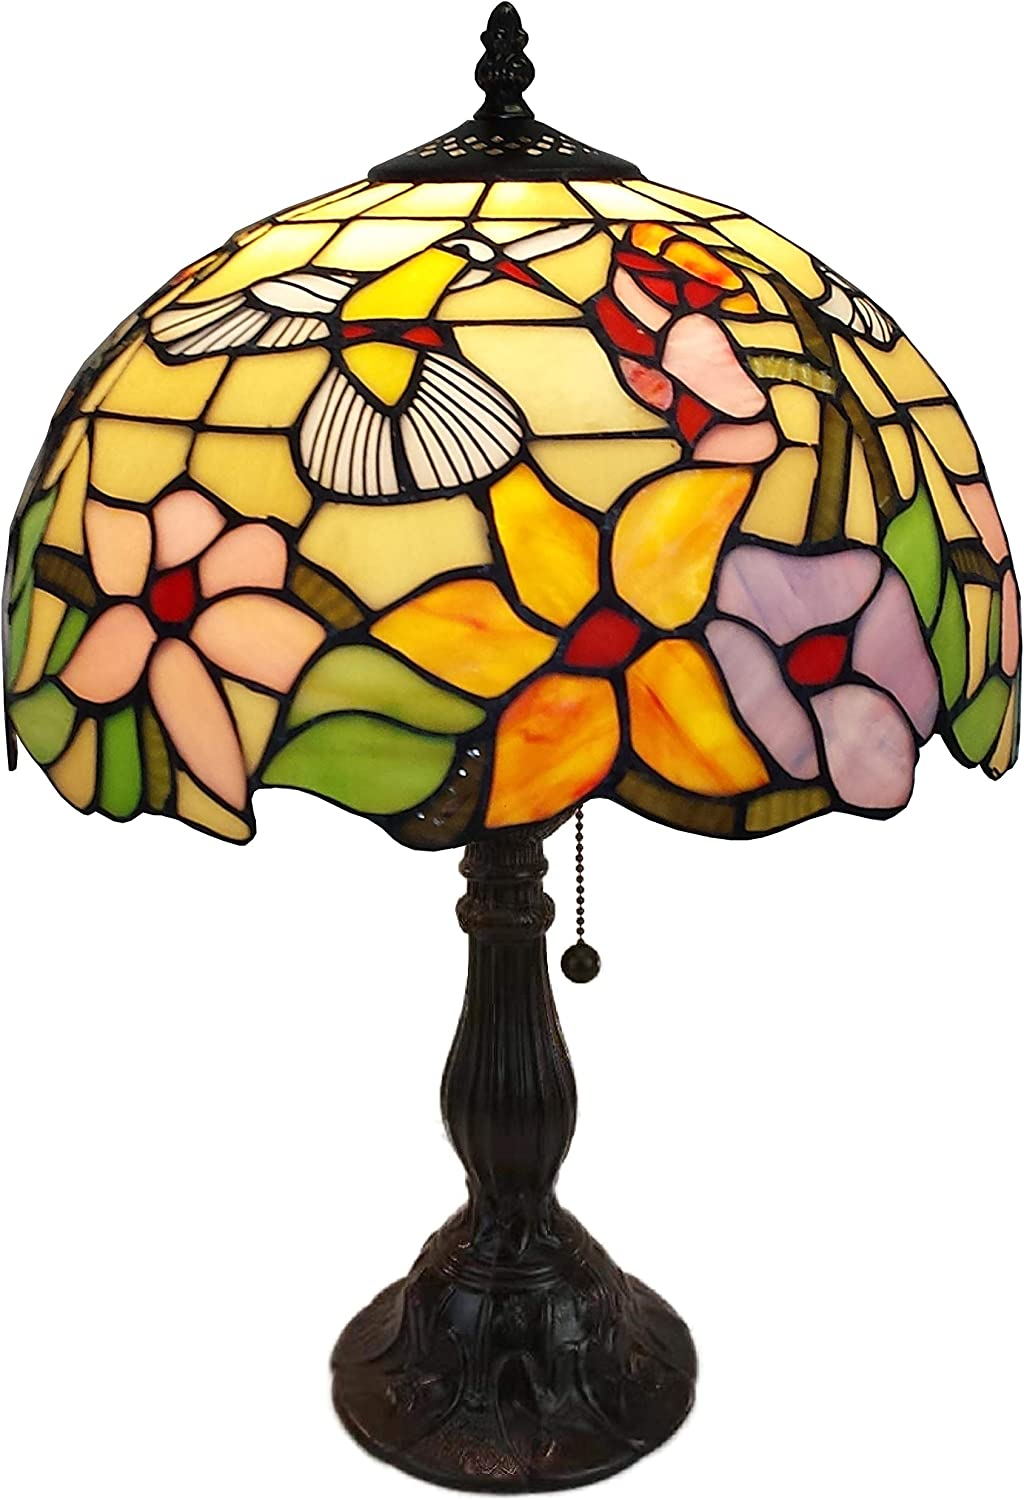 """Amora Lighting Tiffany Style Table Lamp Banker 19"""" Tall Stained Glass Yellow Red Tan Floral Hummingbird Vintage Antique Light Décor Living Room Bedroom Office Handmade Gift AM1112TL12B, Multicolor"""